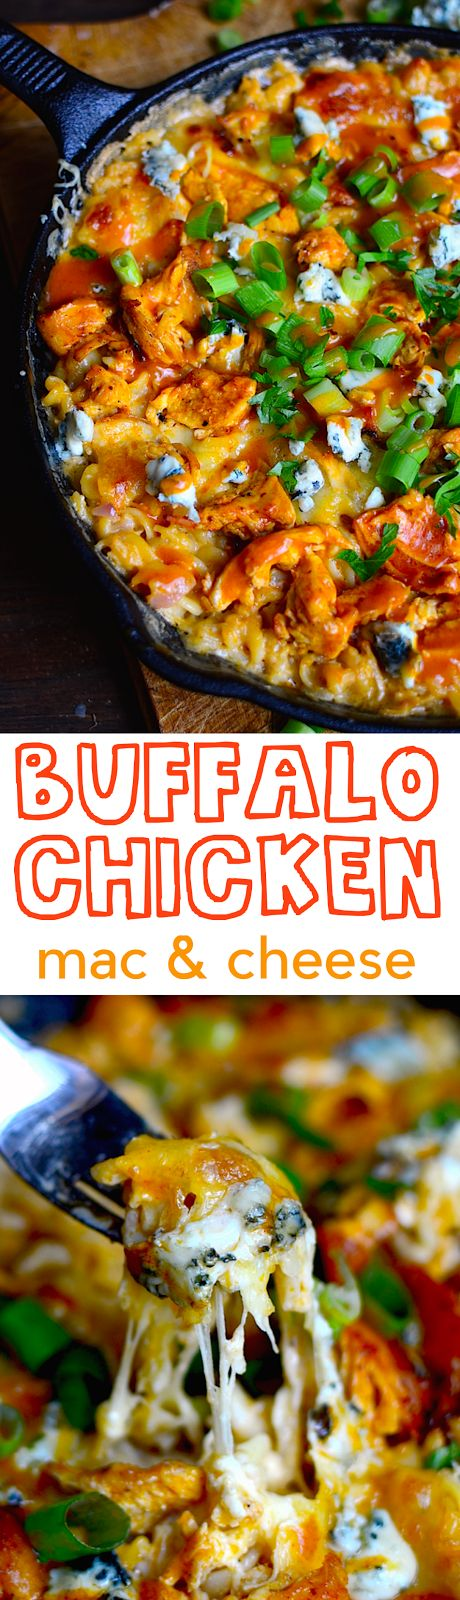 YUM! Baked buffalo chicken macaroni and cheese! Spicy, creamy, gooey, and delicious all in one.